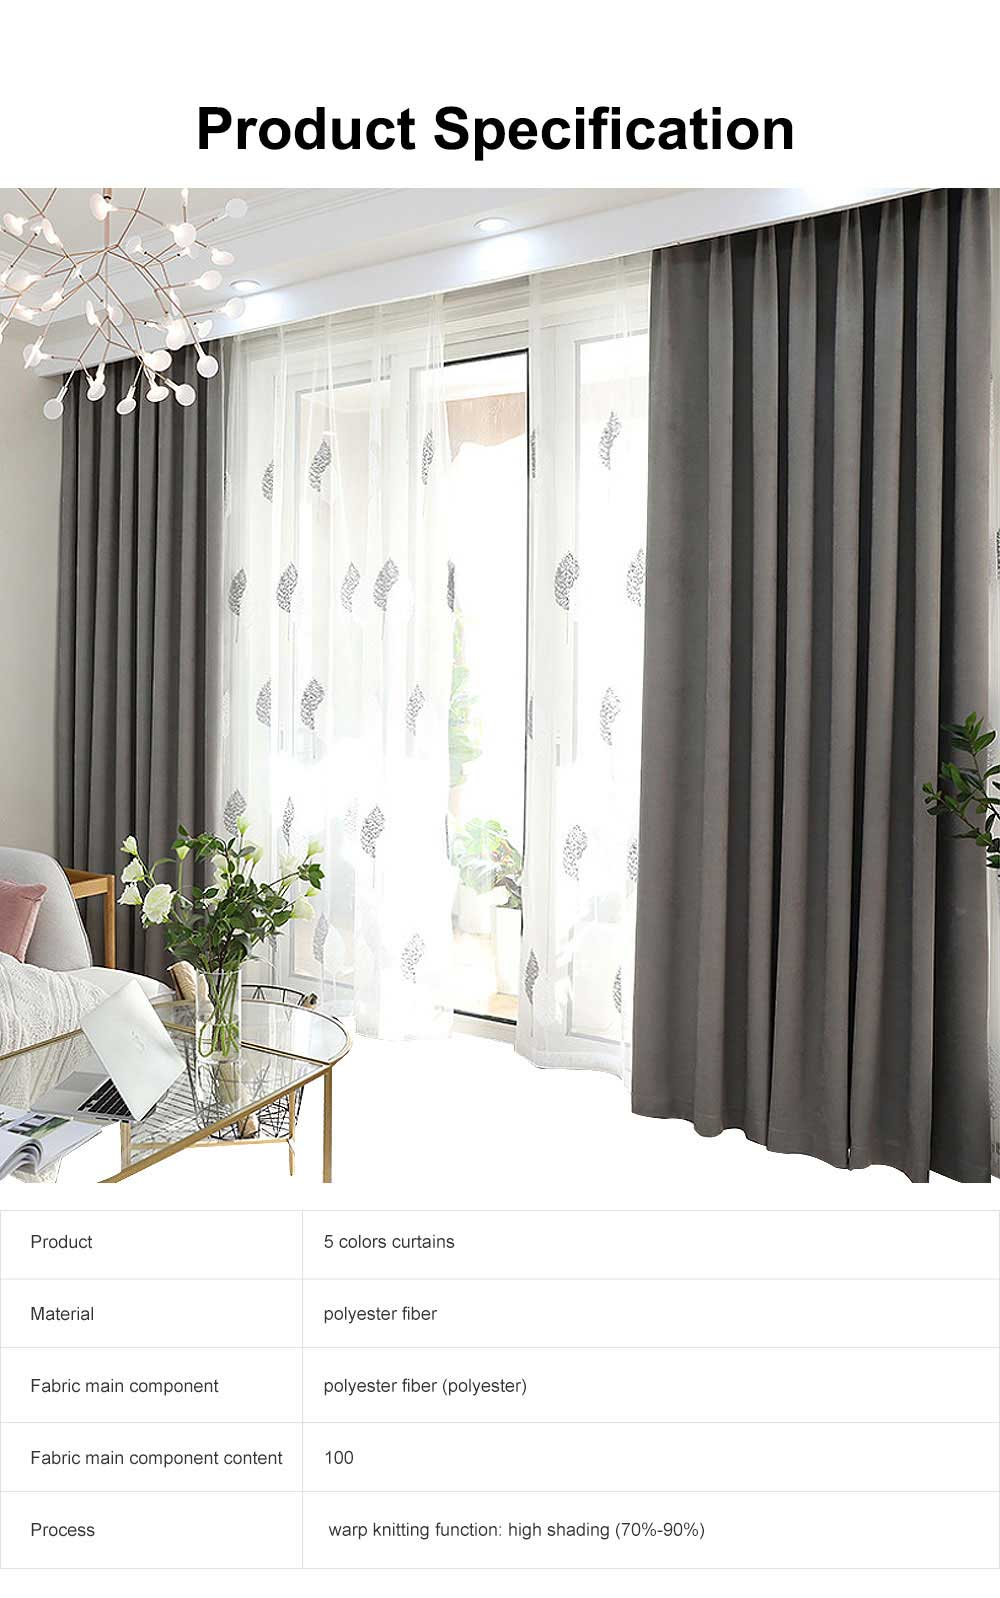 5 Color Nordic Style Curtain, Solid Color Curtains for Living Room Bedroom, Modern Minimalist Blackout Curtain 6